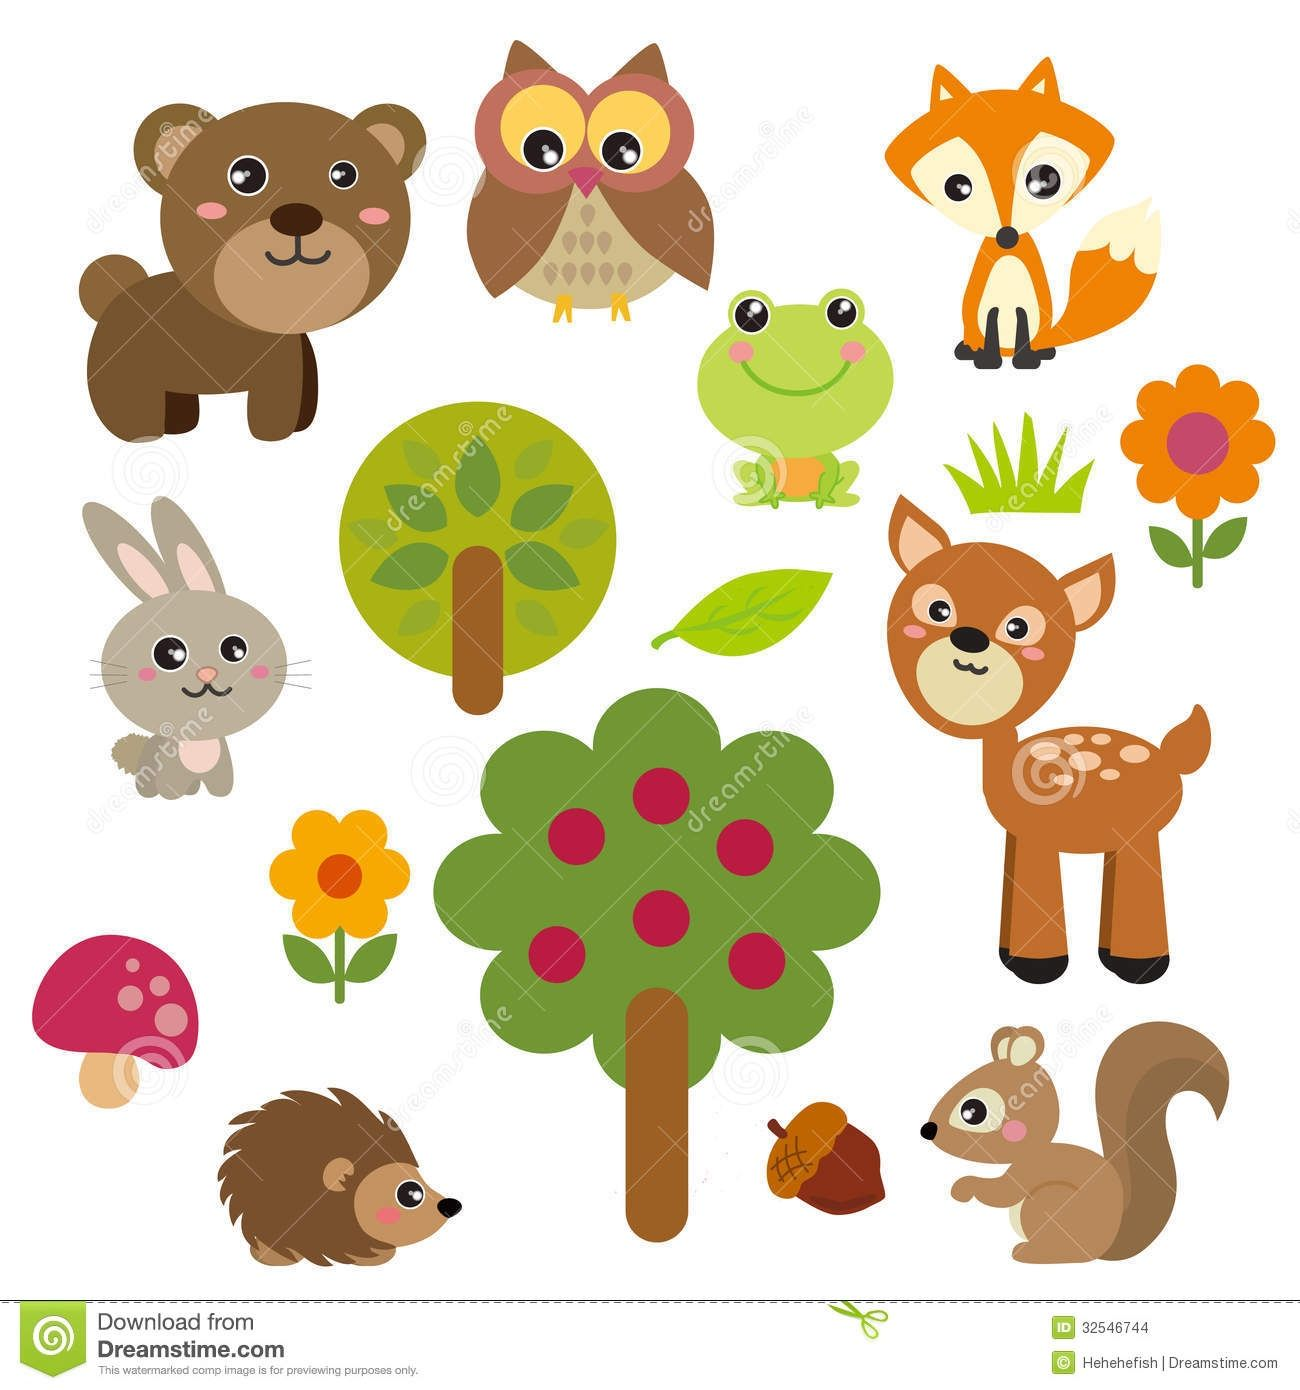 Image Result For Cute Animal Cartoon Images Cute Animal Clipart Cute Animal Illustration Animal Clipart